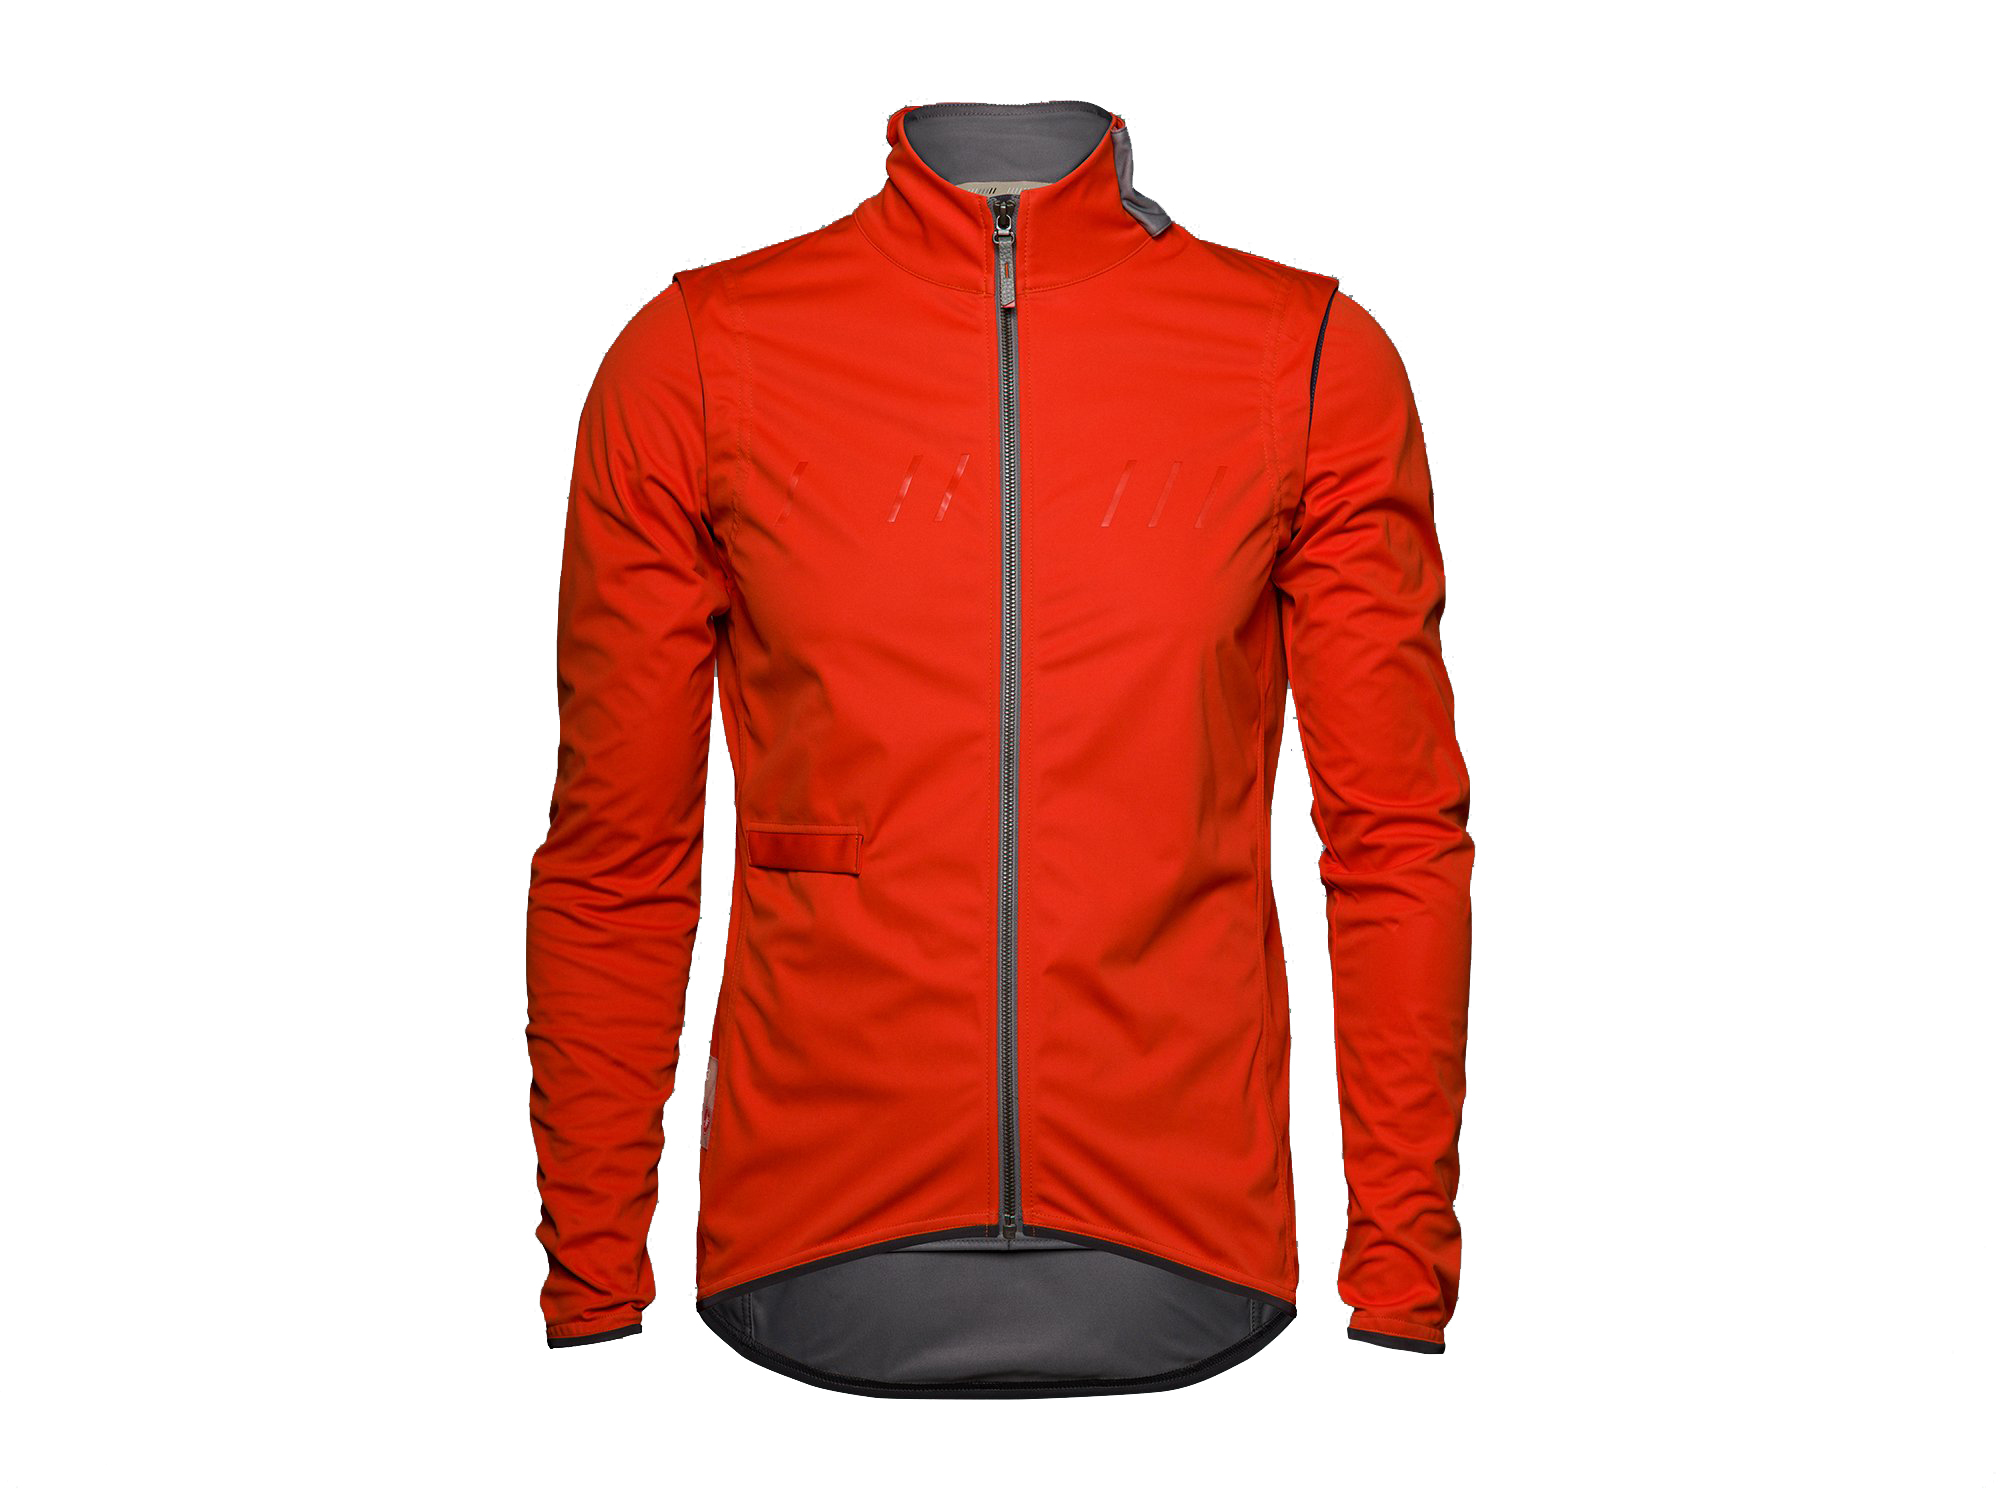 Chpt.3 Rocka MK2 Long Sleeve 1.64 All Weather Jacket   Fire Red - 700 a934cf1ae5